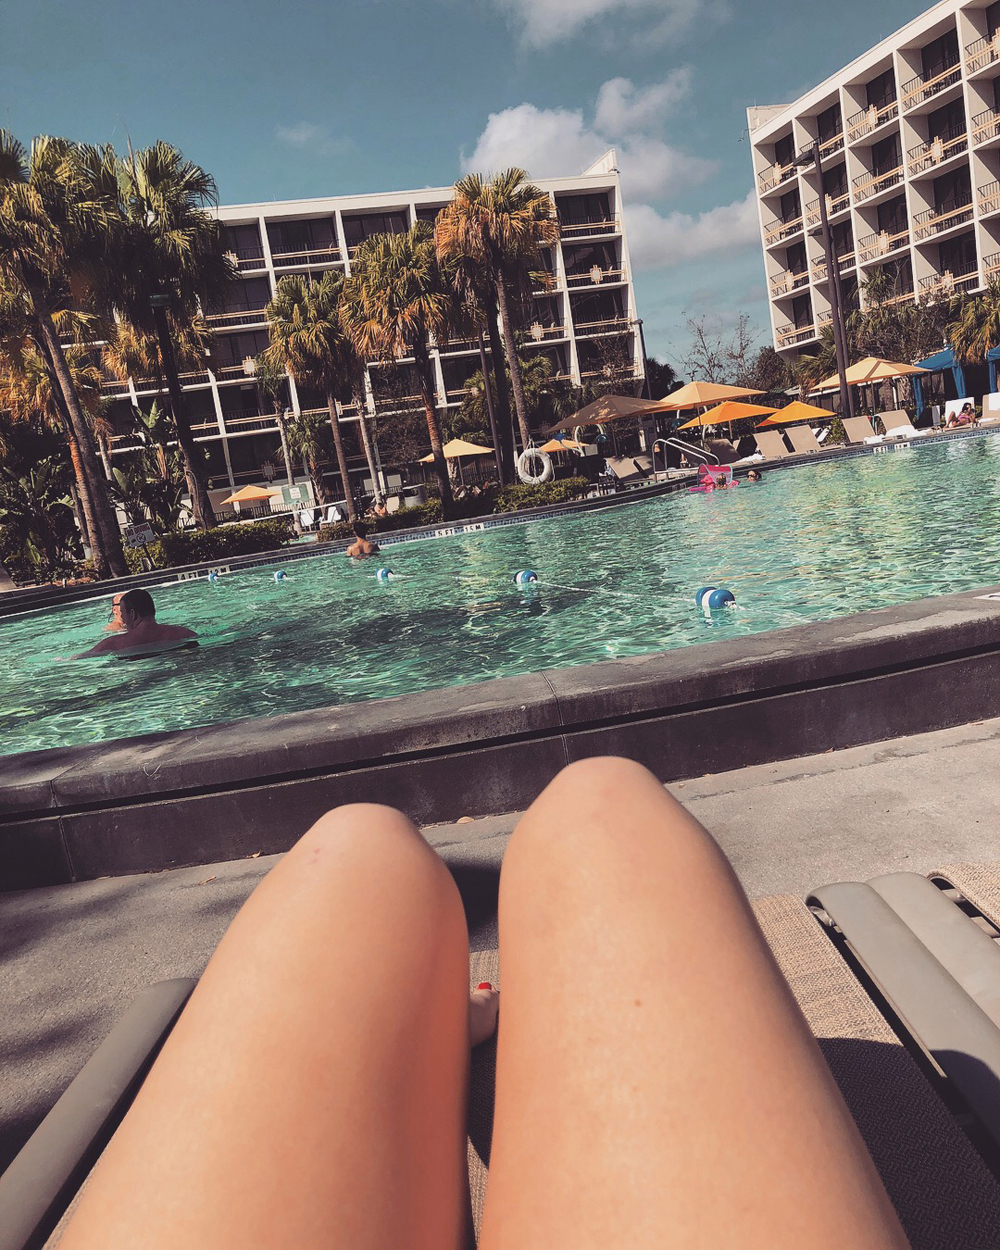 Breanna has been treated to luxury holidays by her sugar daddy